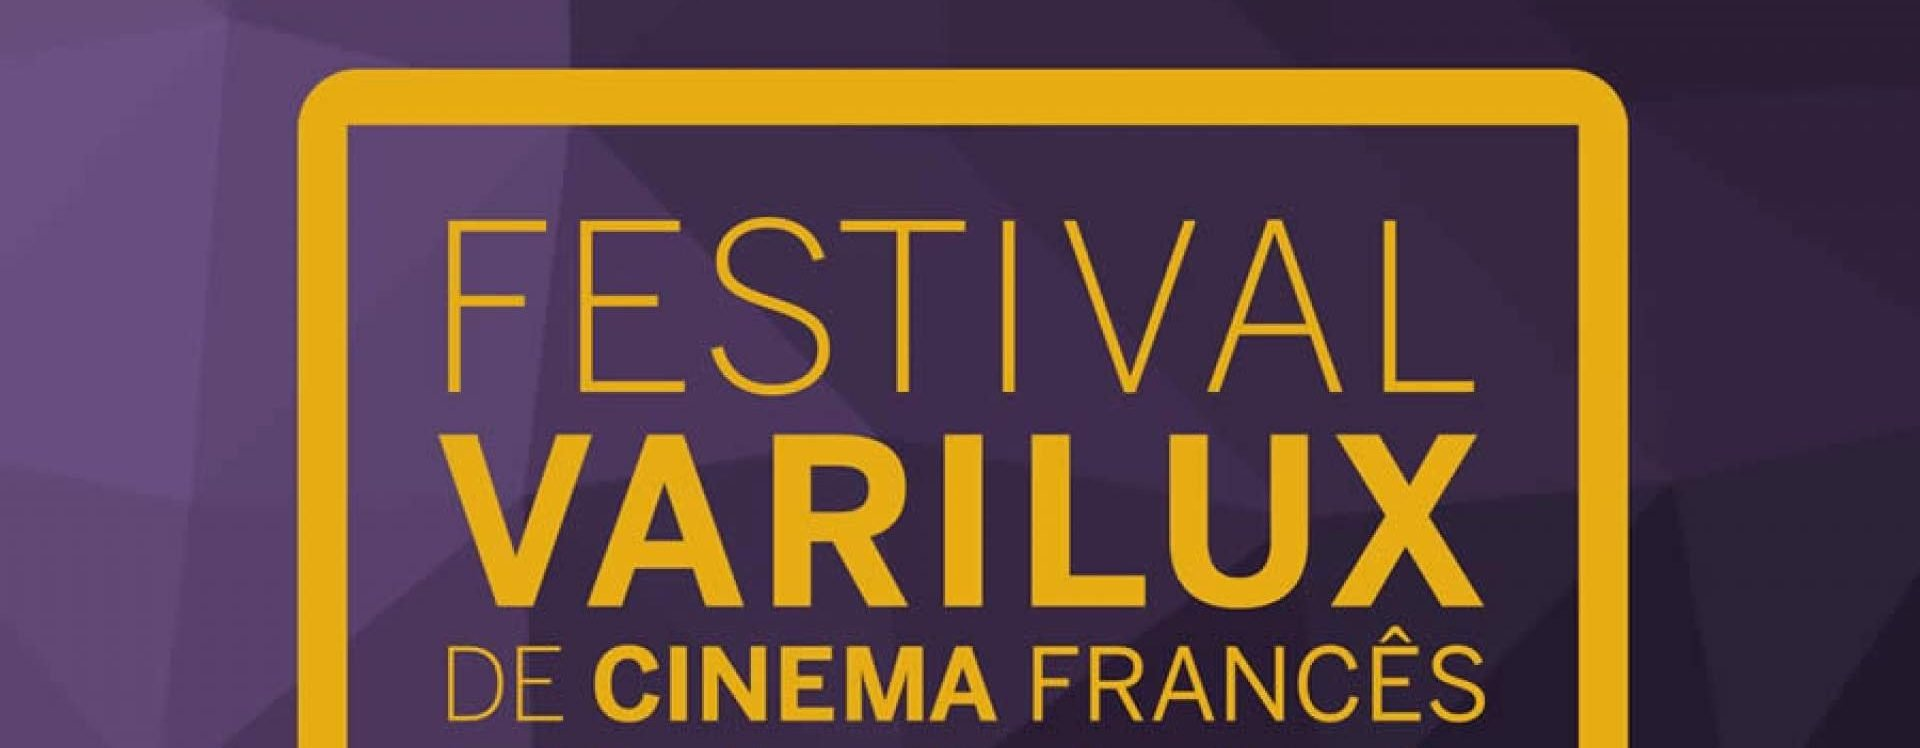 Logo do Festival Varilux de Cinema Francês